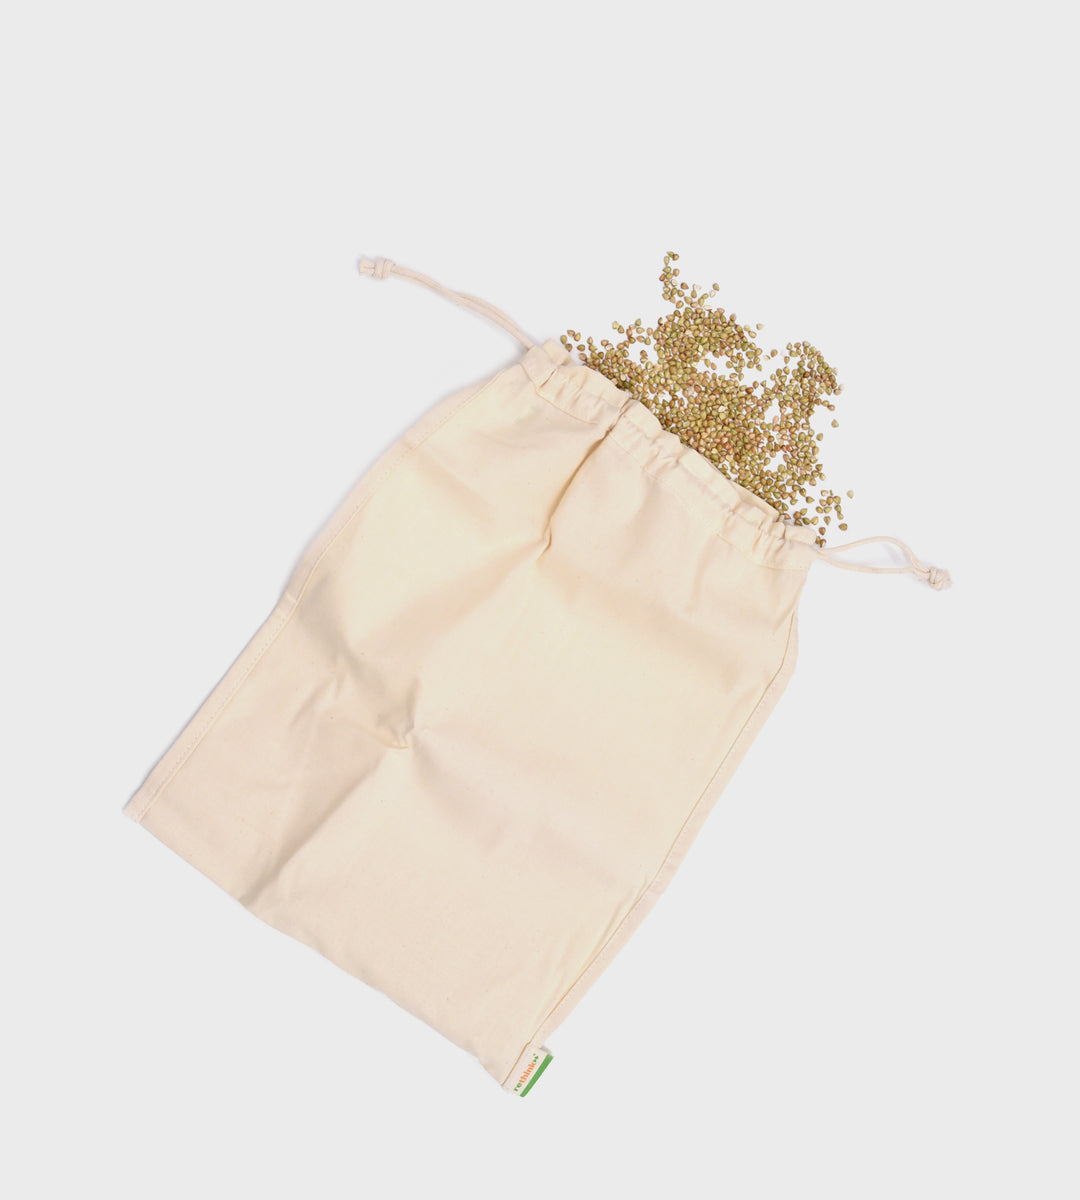 Rethink Reusable Bulk Bin Bags | Pack of 3